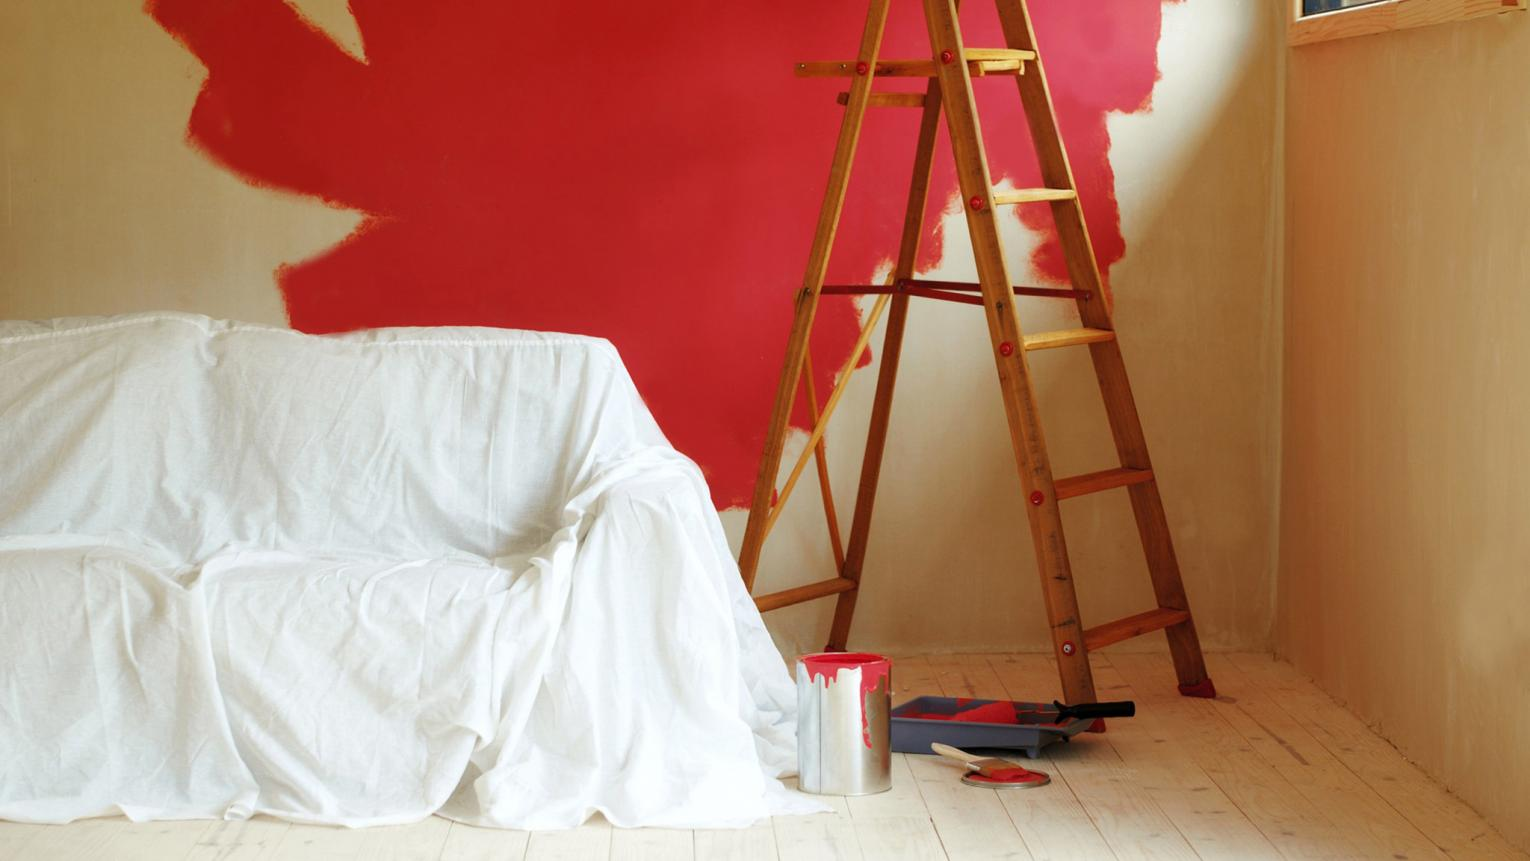 Protect your room when decorating with dustsheets to cover furniture that can't be moved.